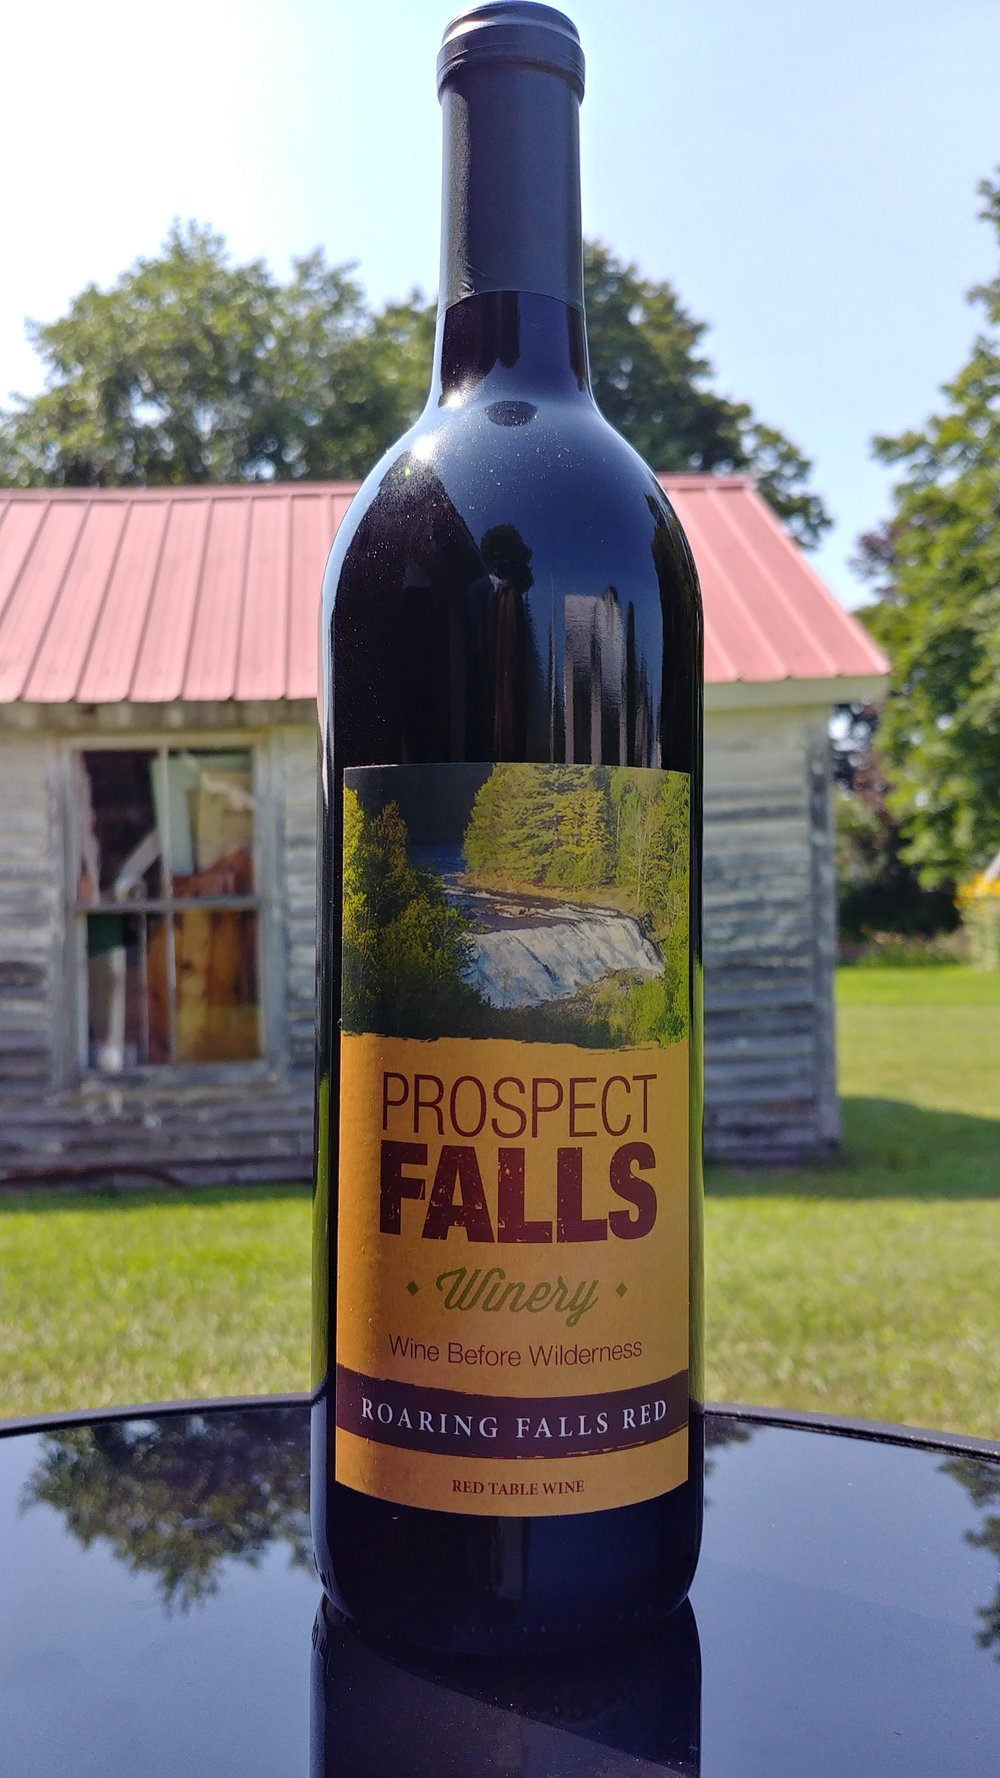 Roaring Falls Red    $16.95 +tax